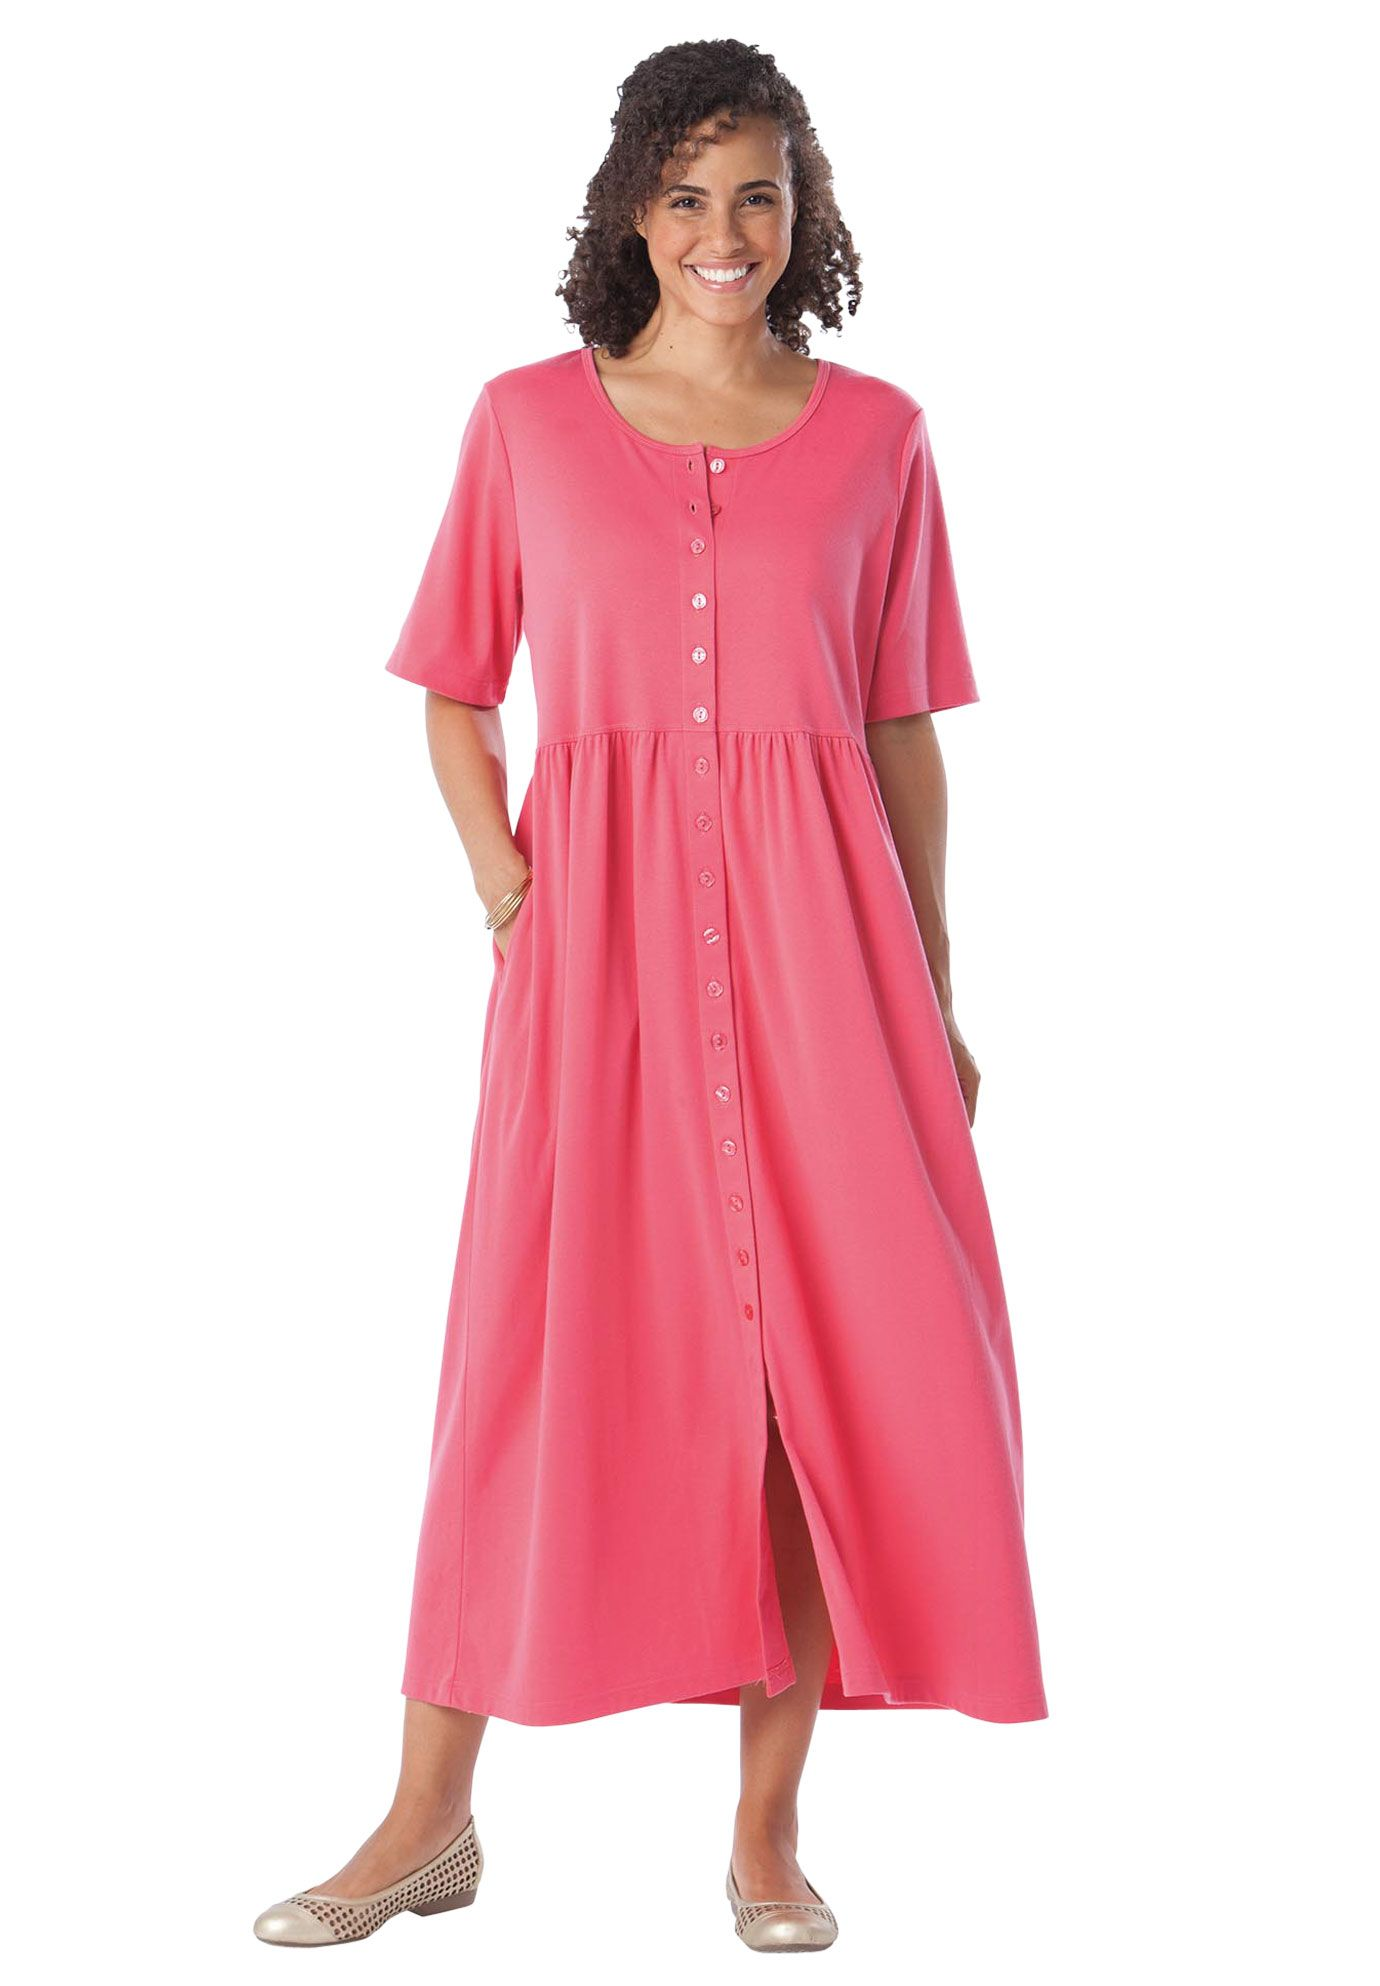 Plus Size Dress With Button Front Empire Waist By Only Necessities